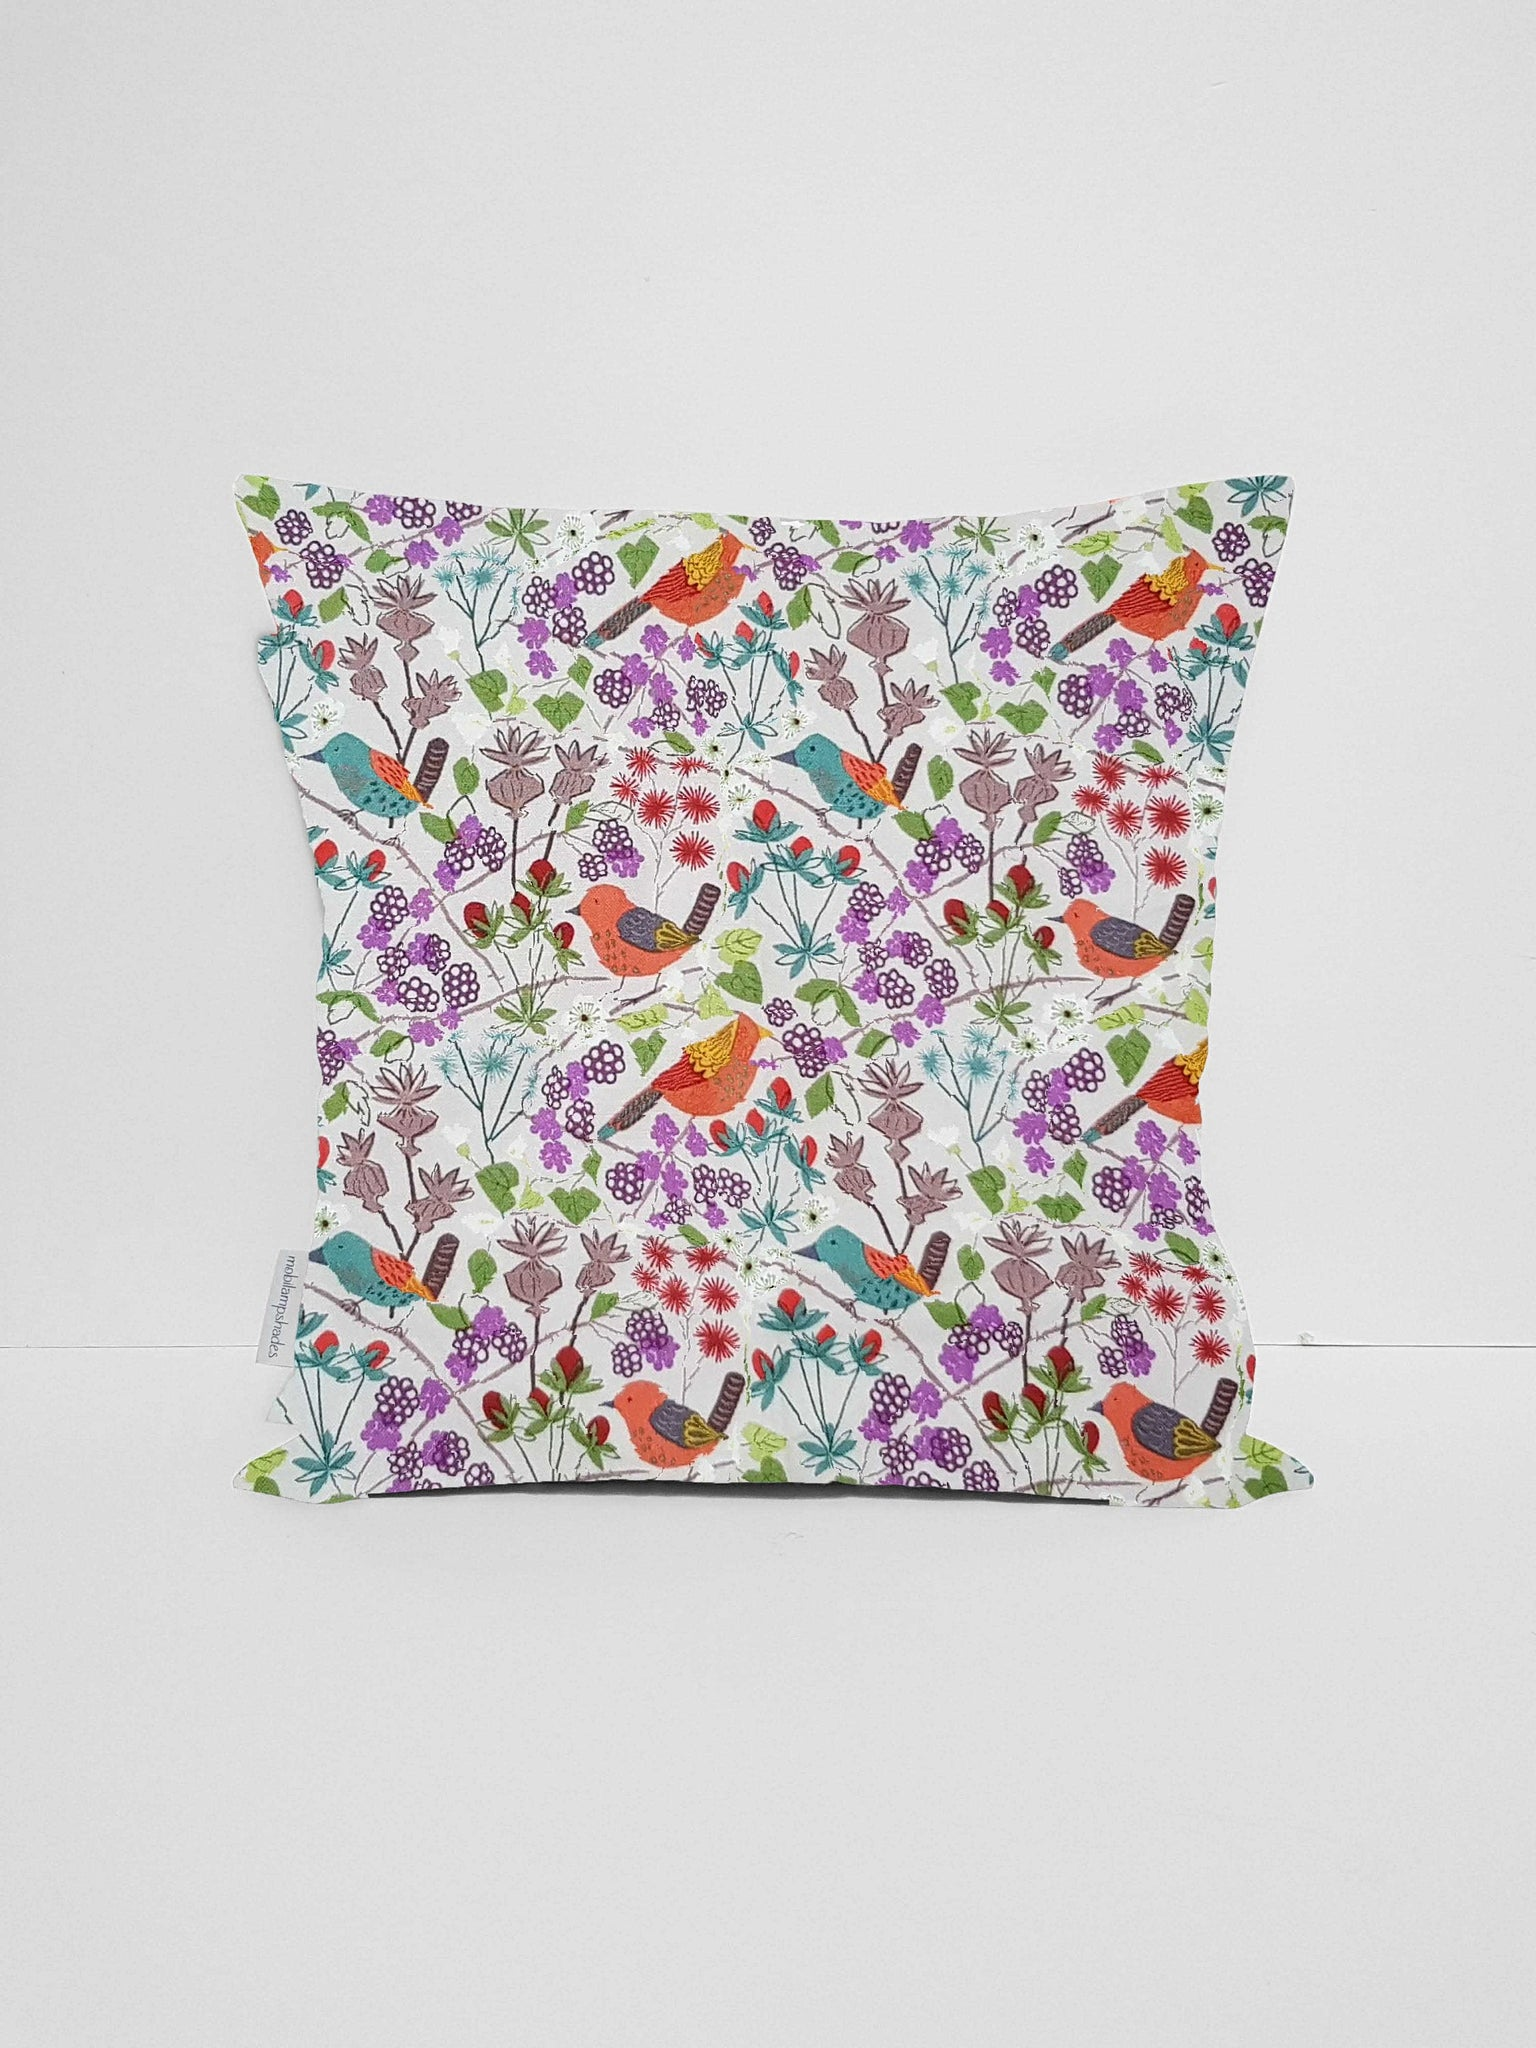 Hedgerow Bird Cushion Cover, British Countryside Home Decor